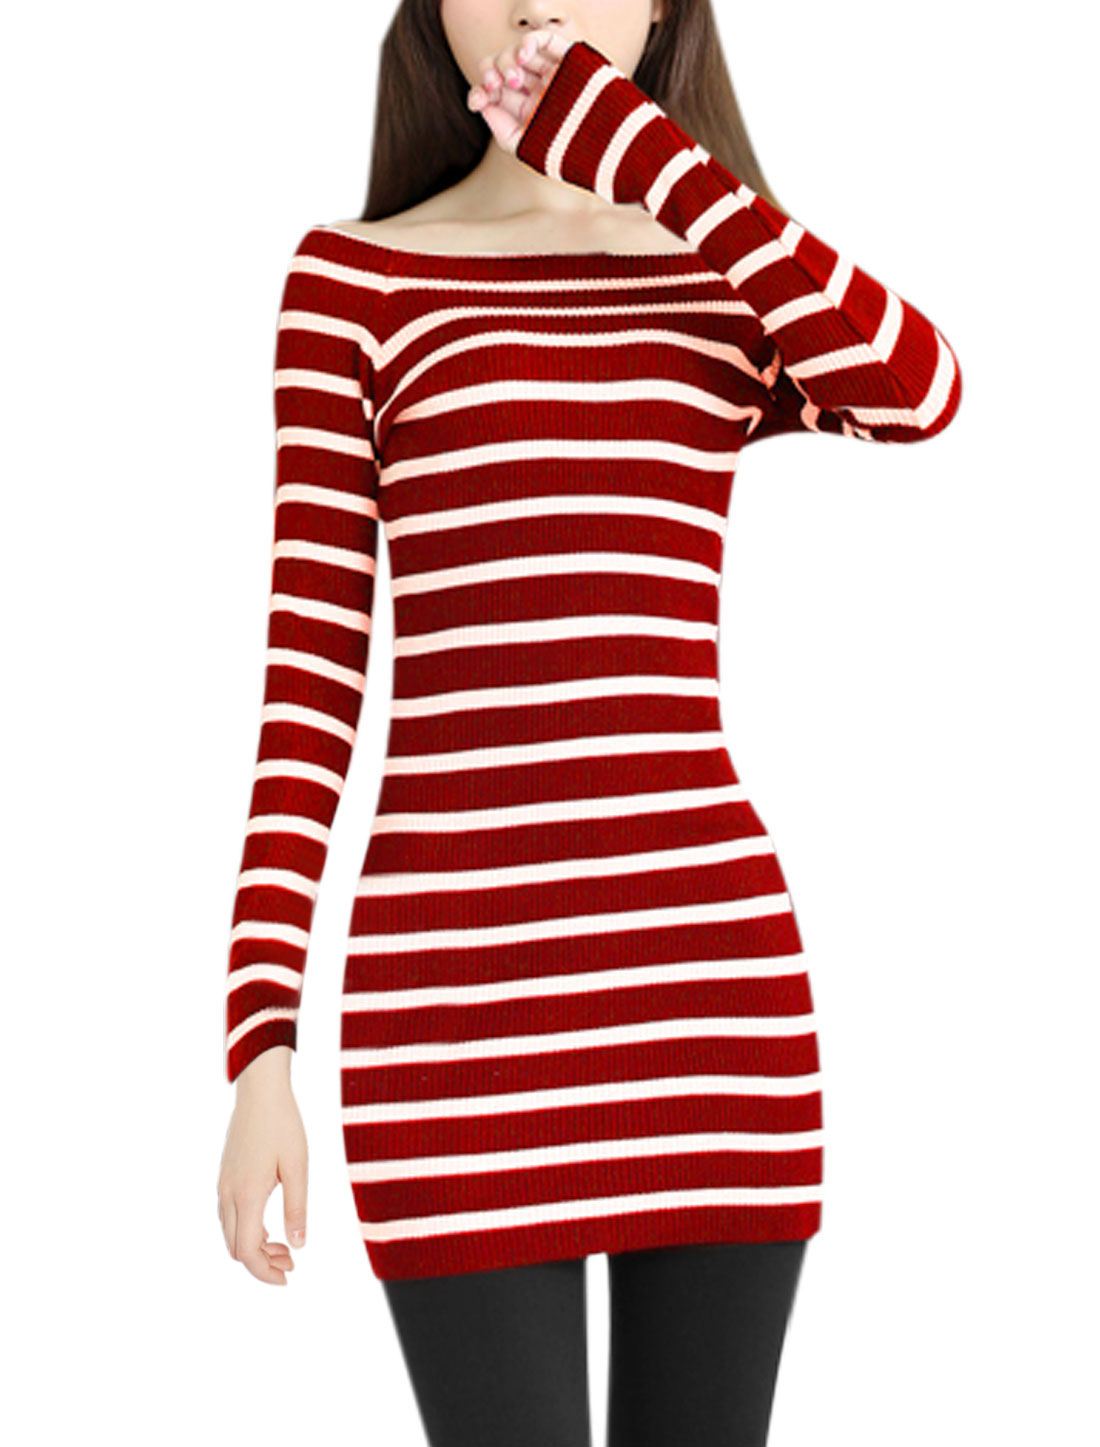 Ladies New Style Off Shoulder Long Sleeve Skinny Casual Knitted Dress Red S